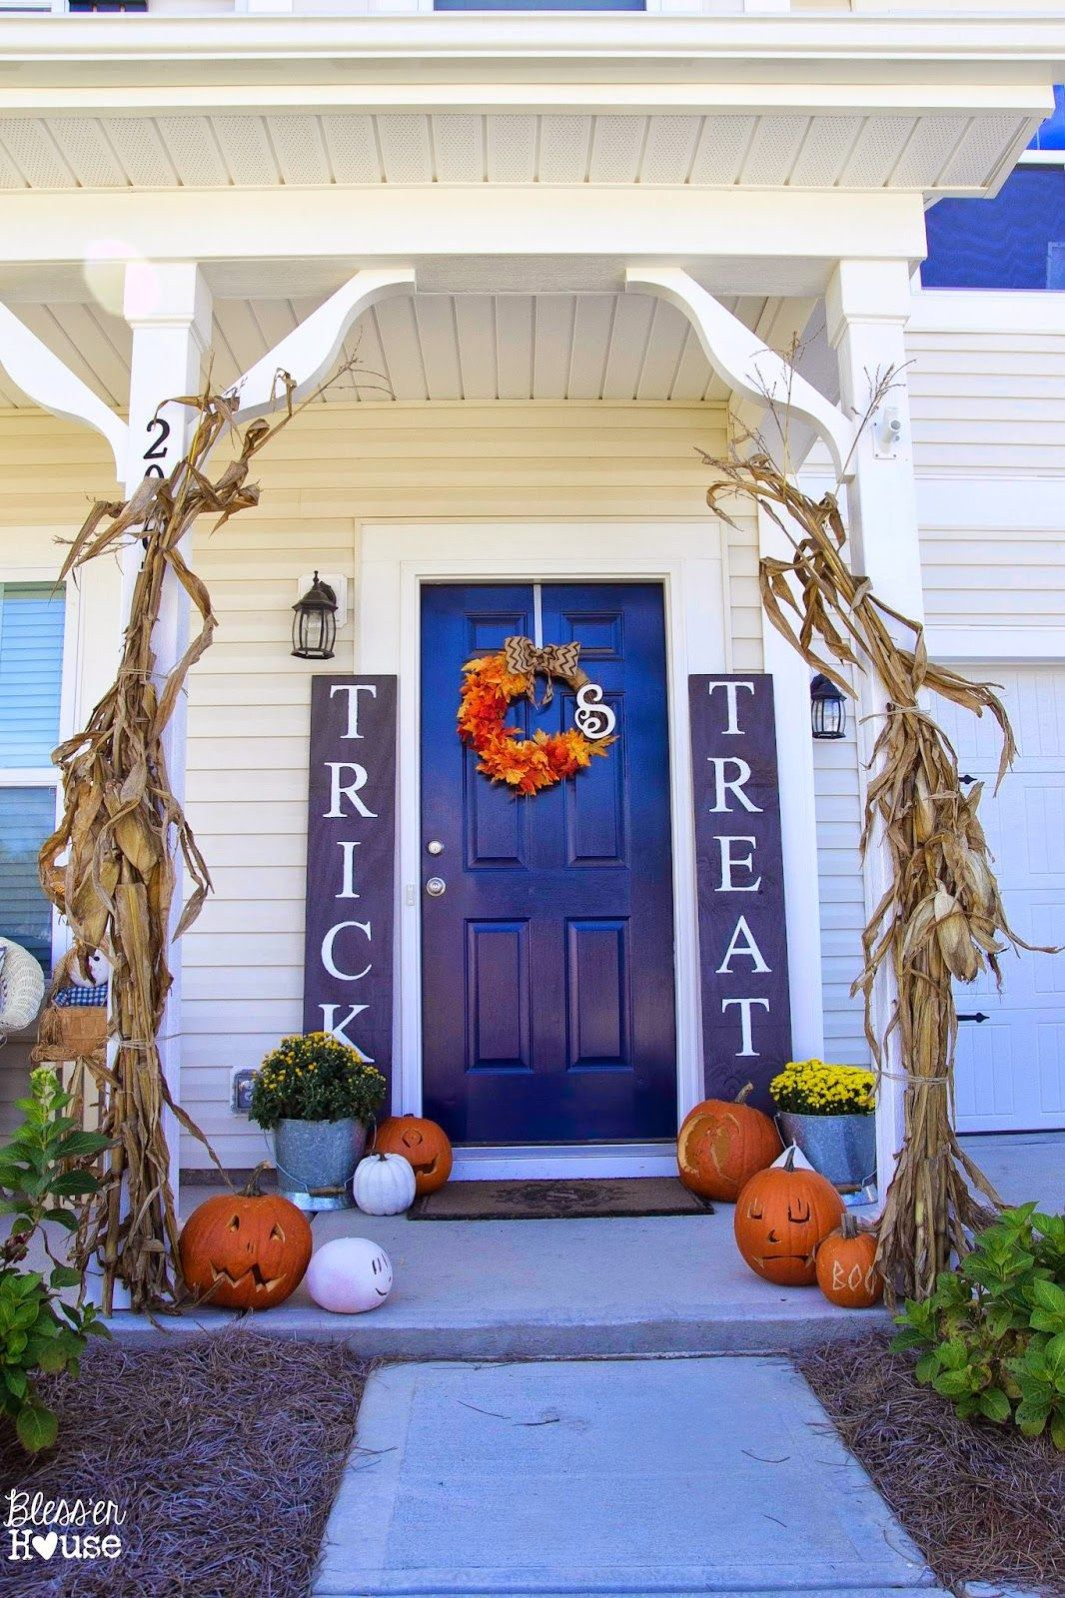 Phony Spider Webs Can Make Your Front Yard Appearance Scary However You Can Halloween Porch Decorations Halloween Front Porch Halloween Outdoor Decorations